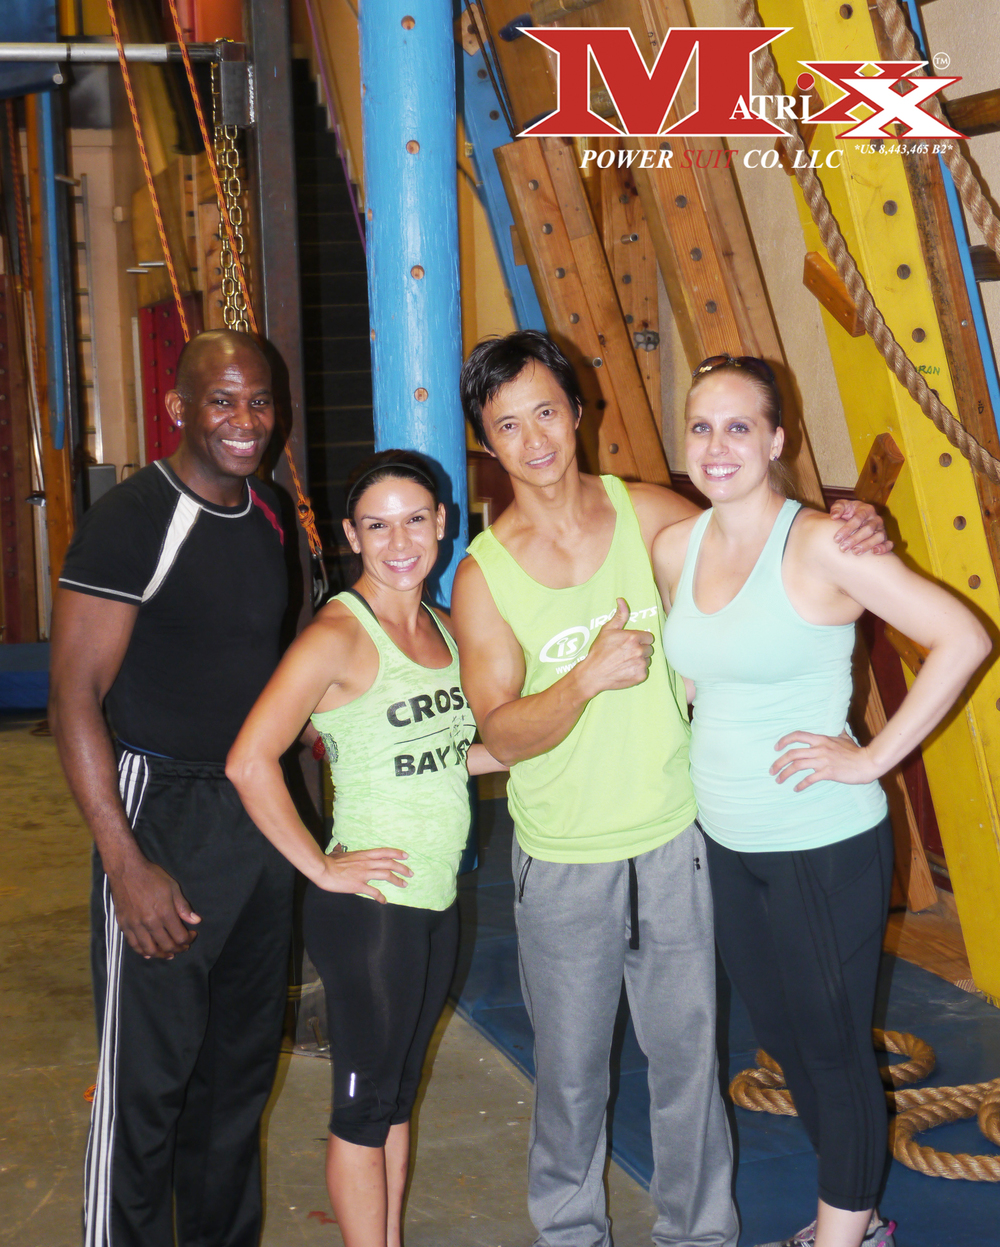 Calvin & Holly w American Ninja Warrior, Sam Sann @ Iron Sports Gym 6-2014